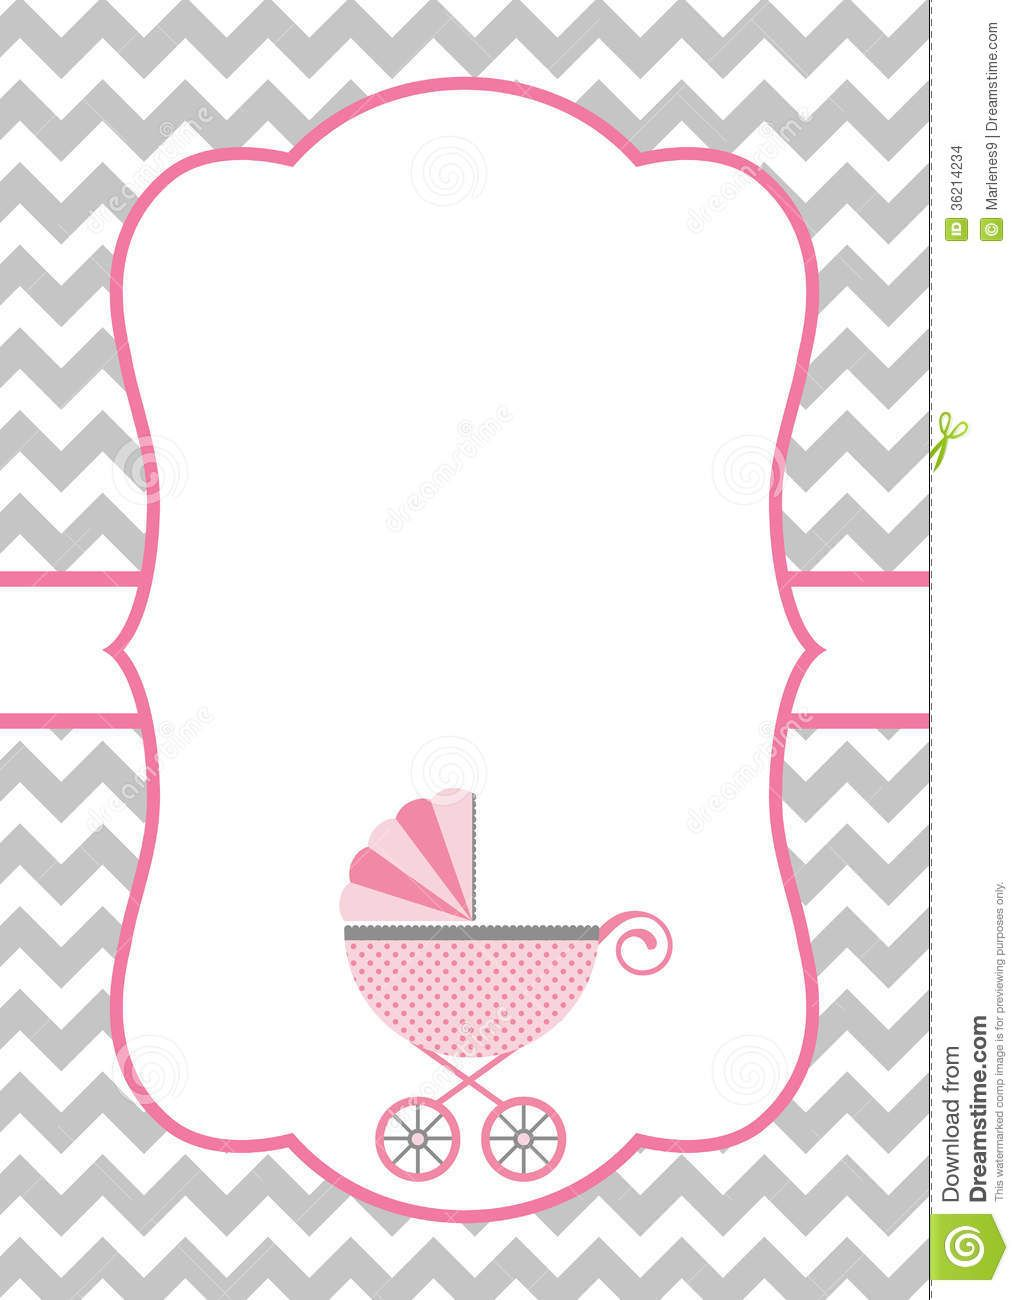 Astounding image with regard to free printable baby shower borders